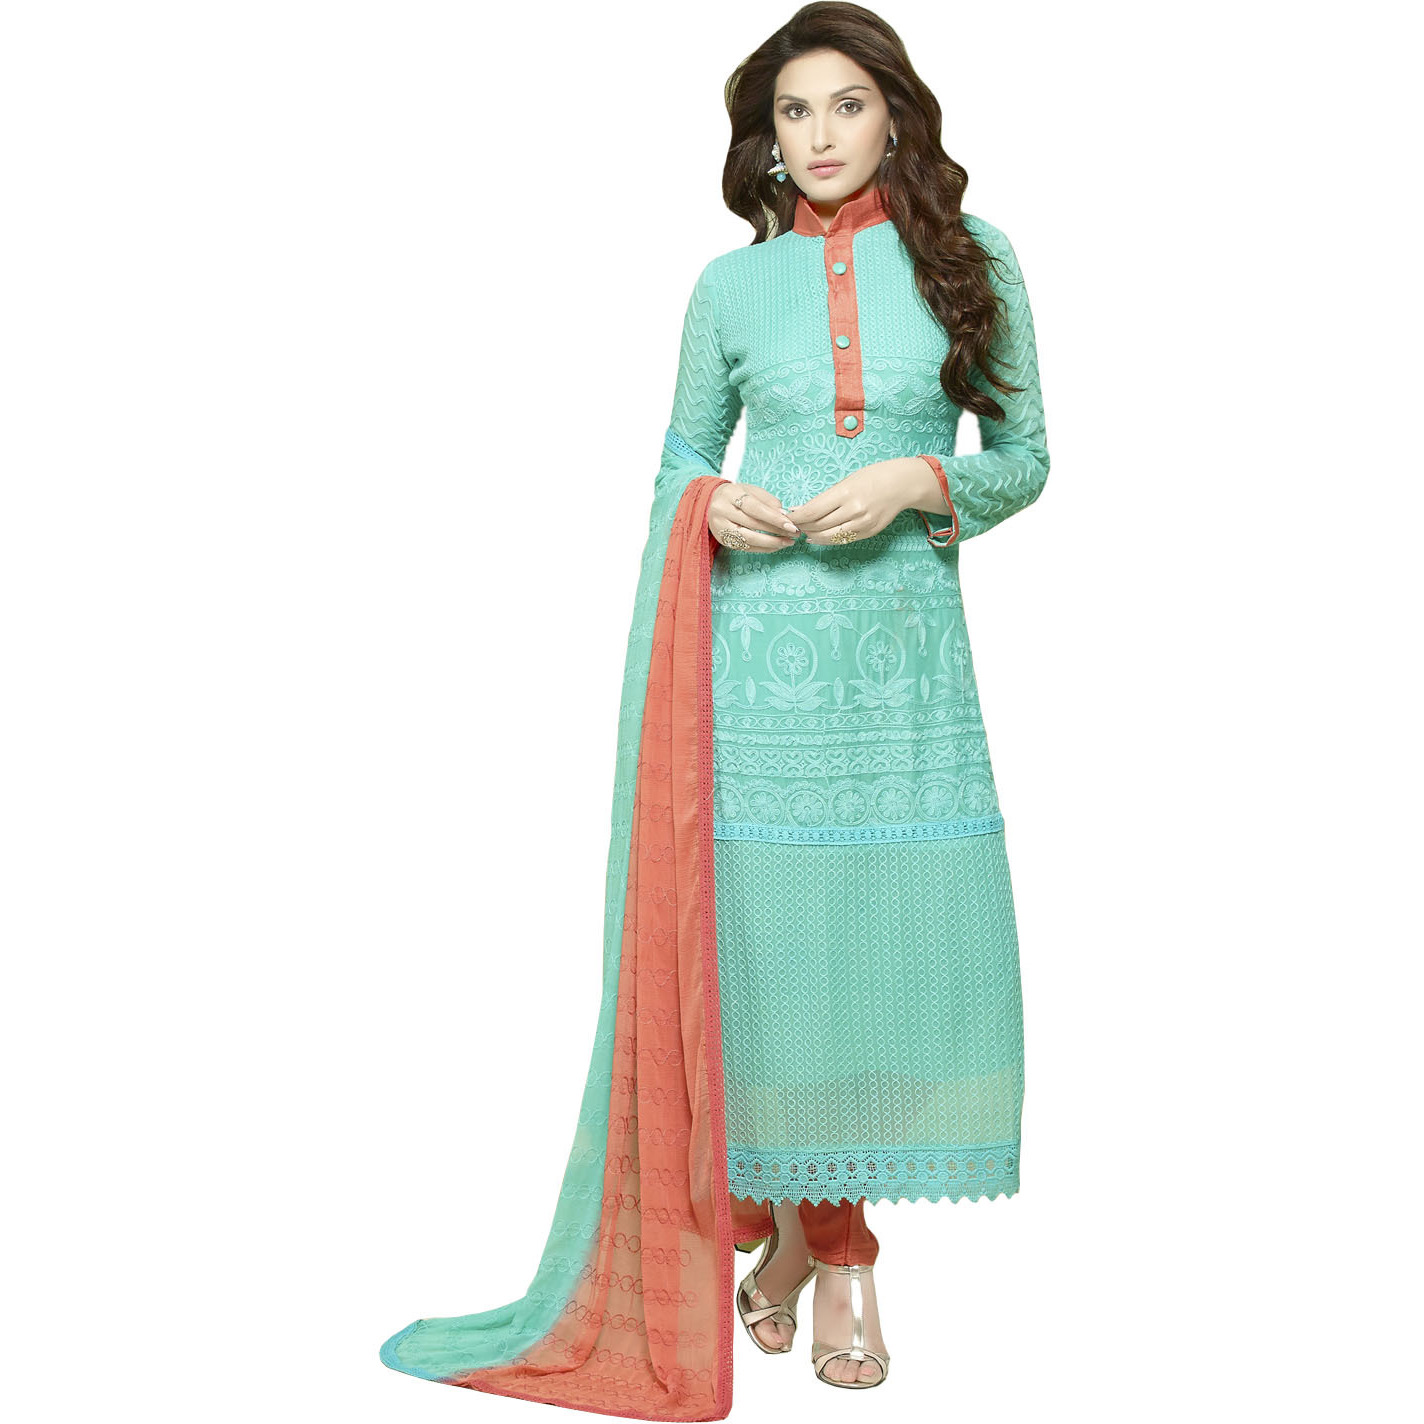 Aruba-Blue and Camellia Long Choodidaar Kameez Suit with Embroidery in Self and Crochet Border